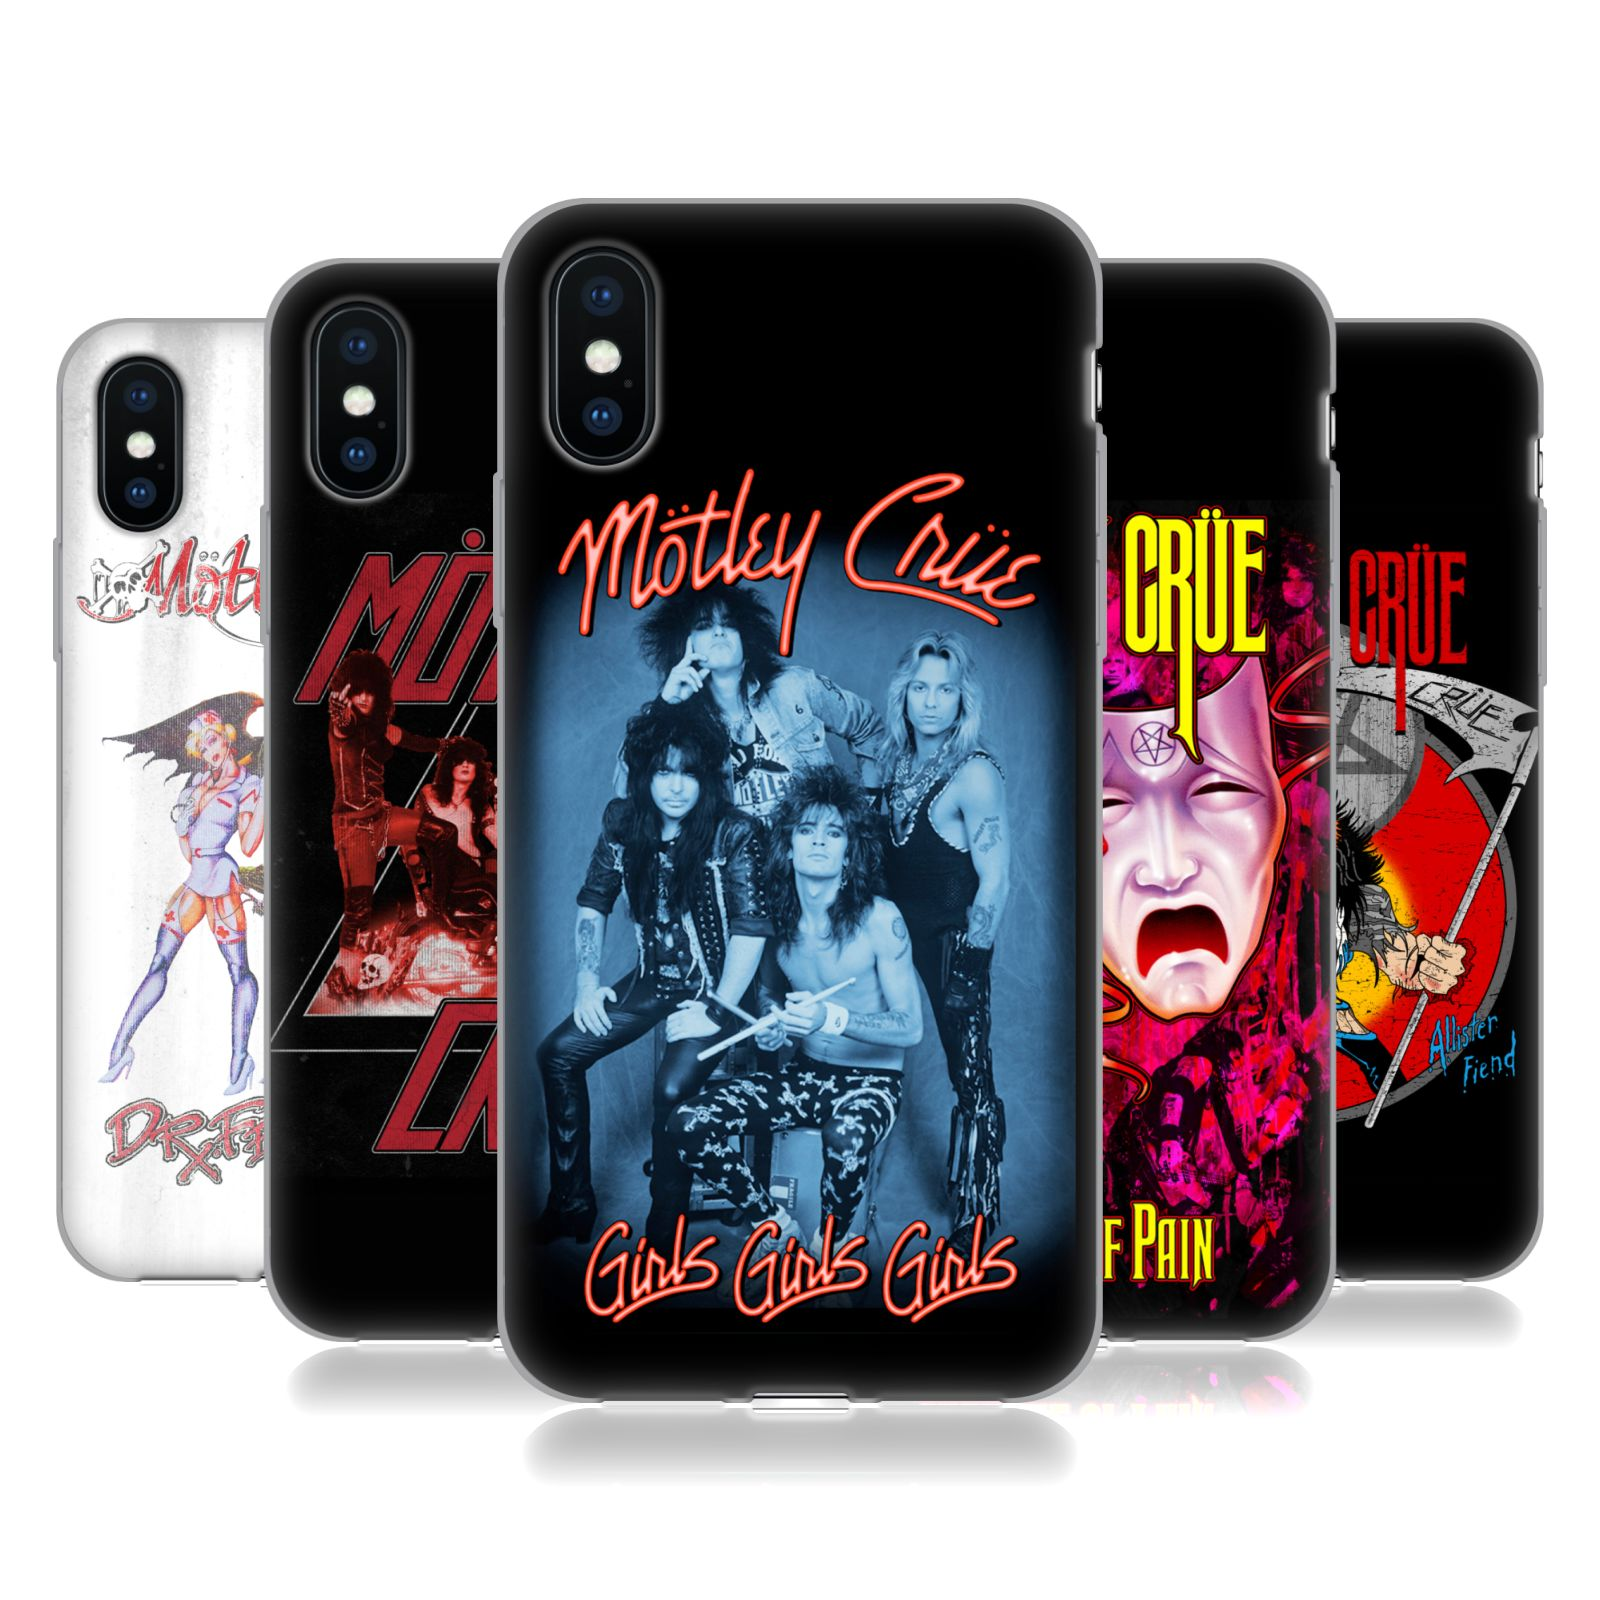 Official Motley Crue Key Art